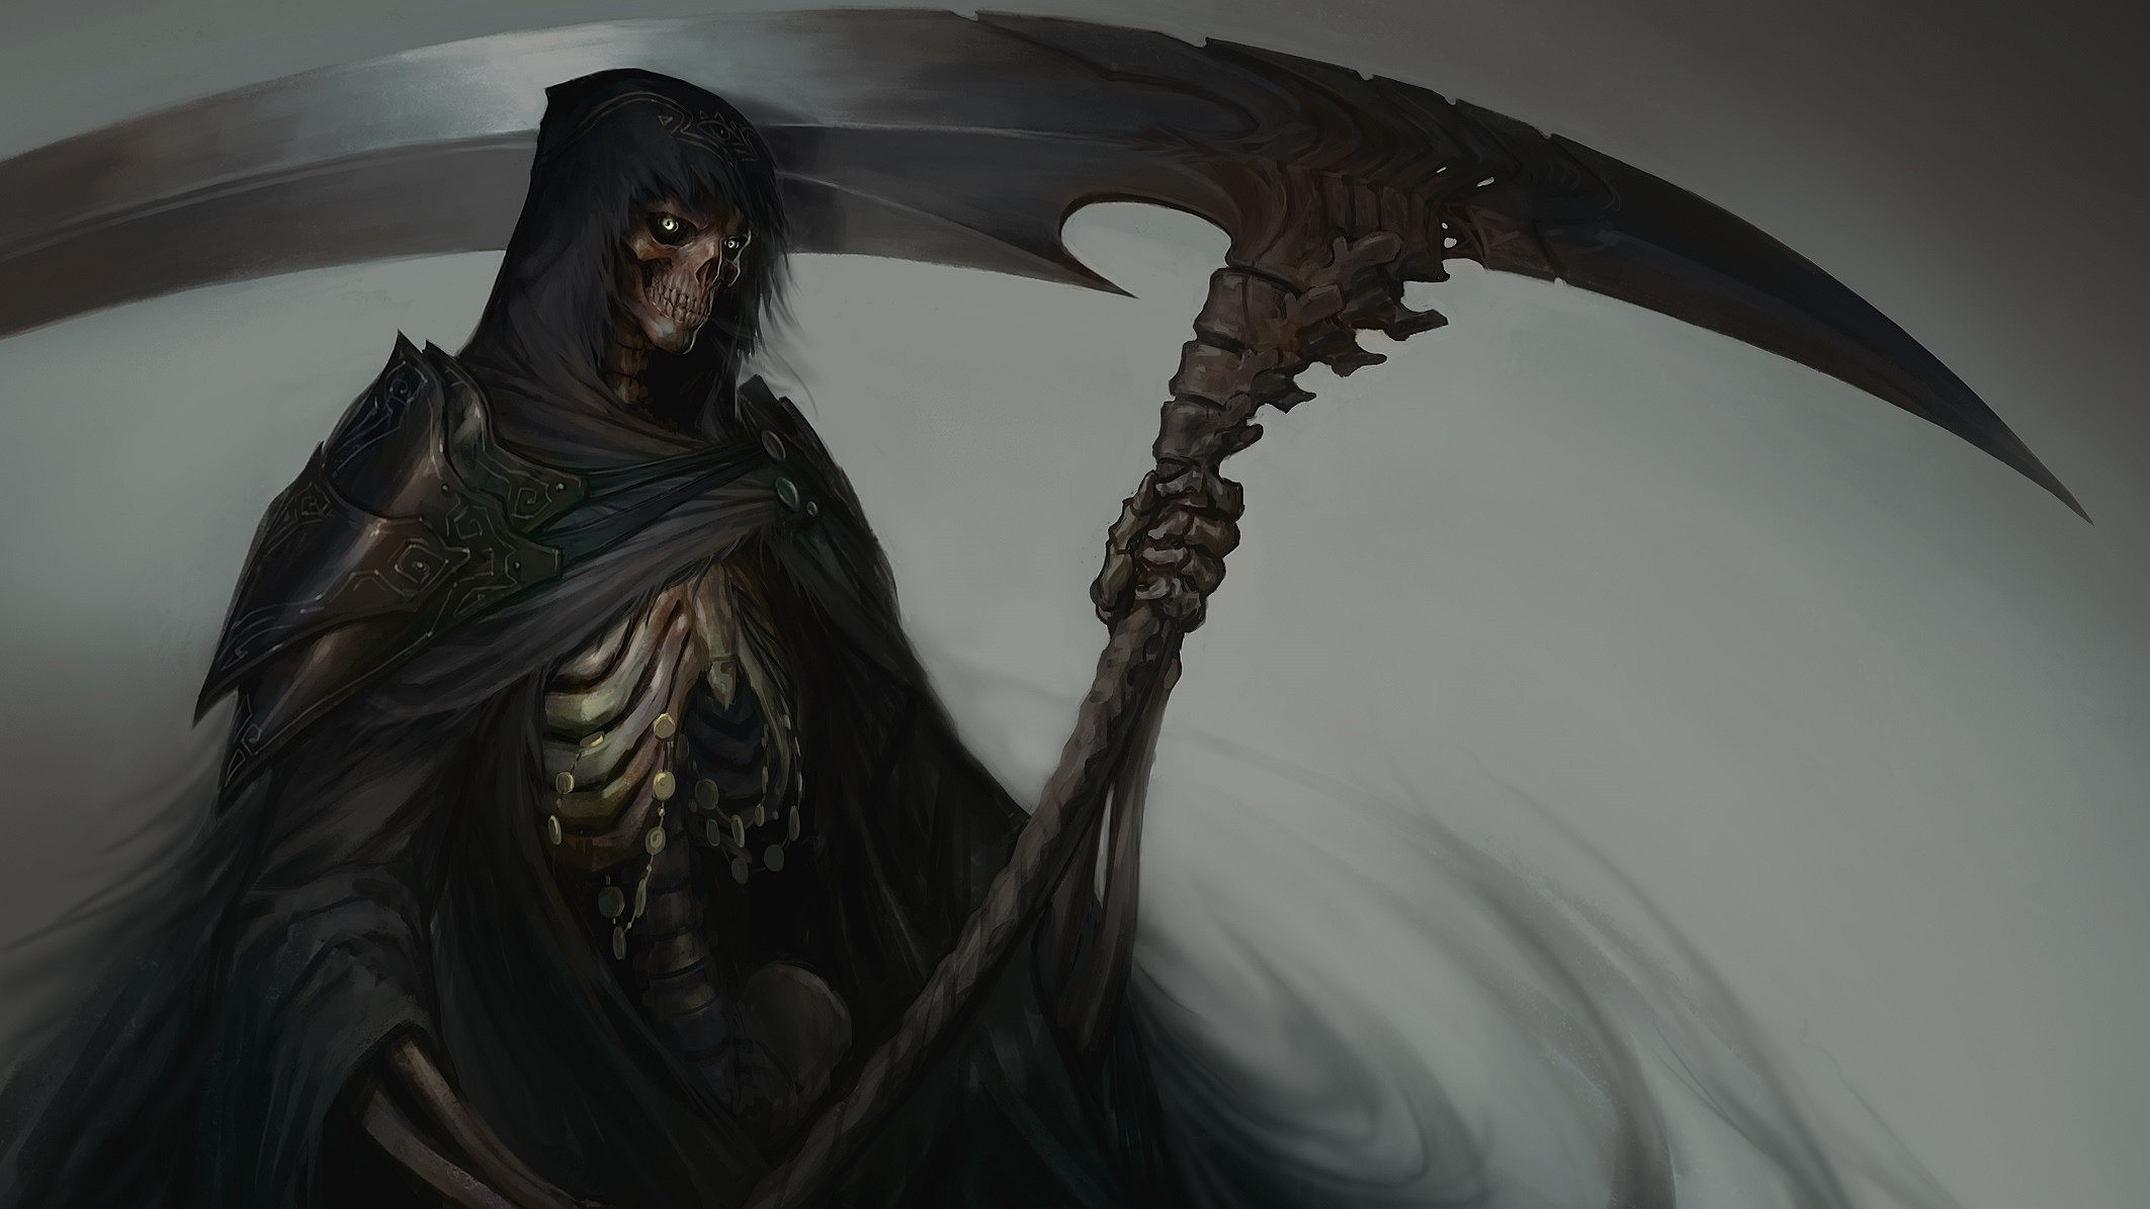 grim reaper full hd wallpaper and background image | 2150x1209 | id